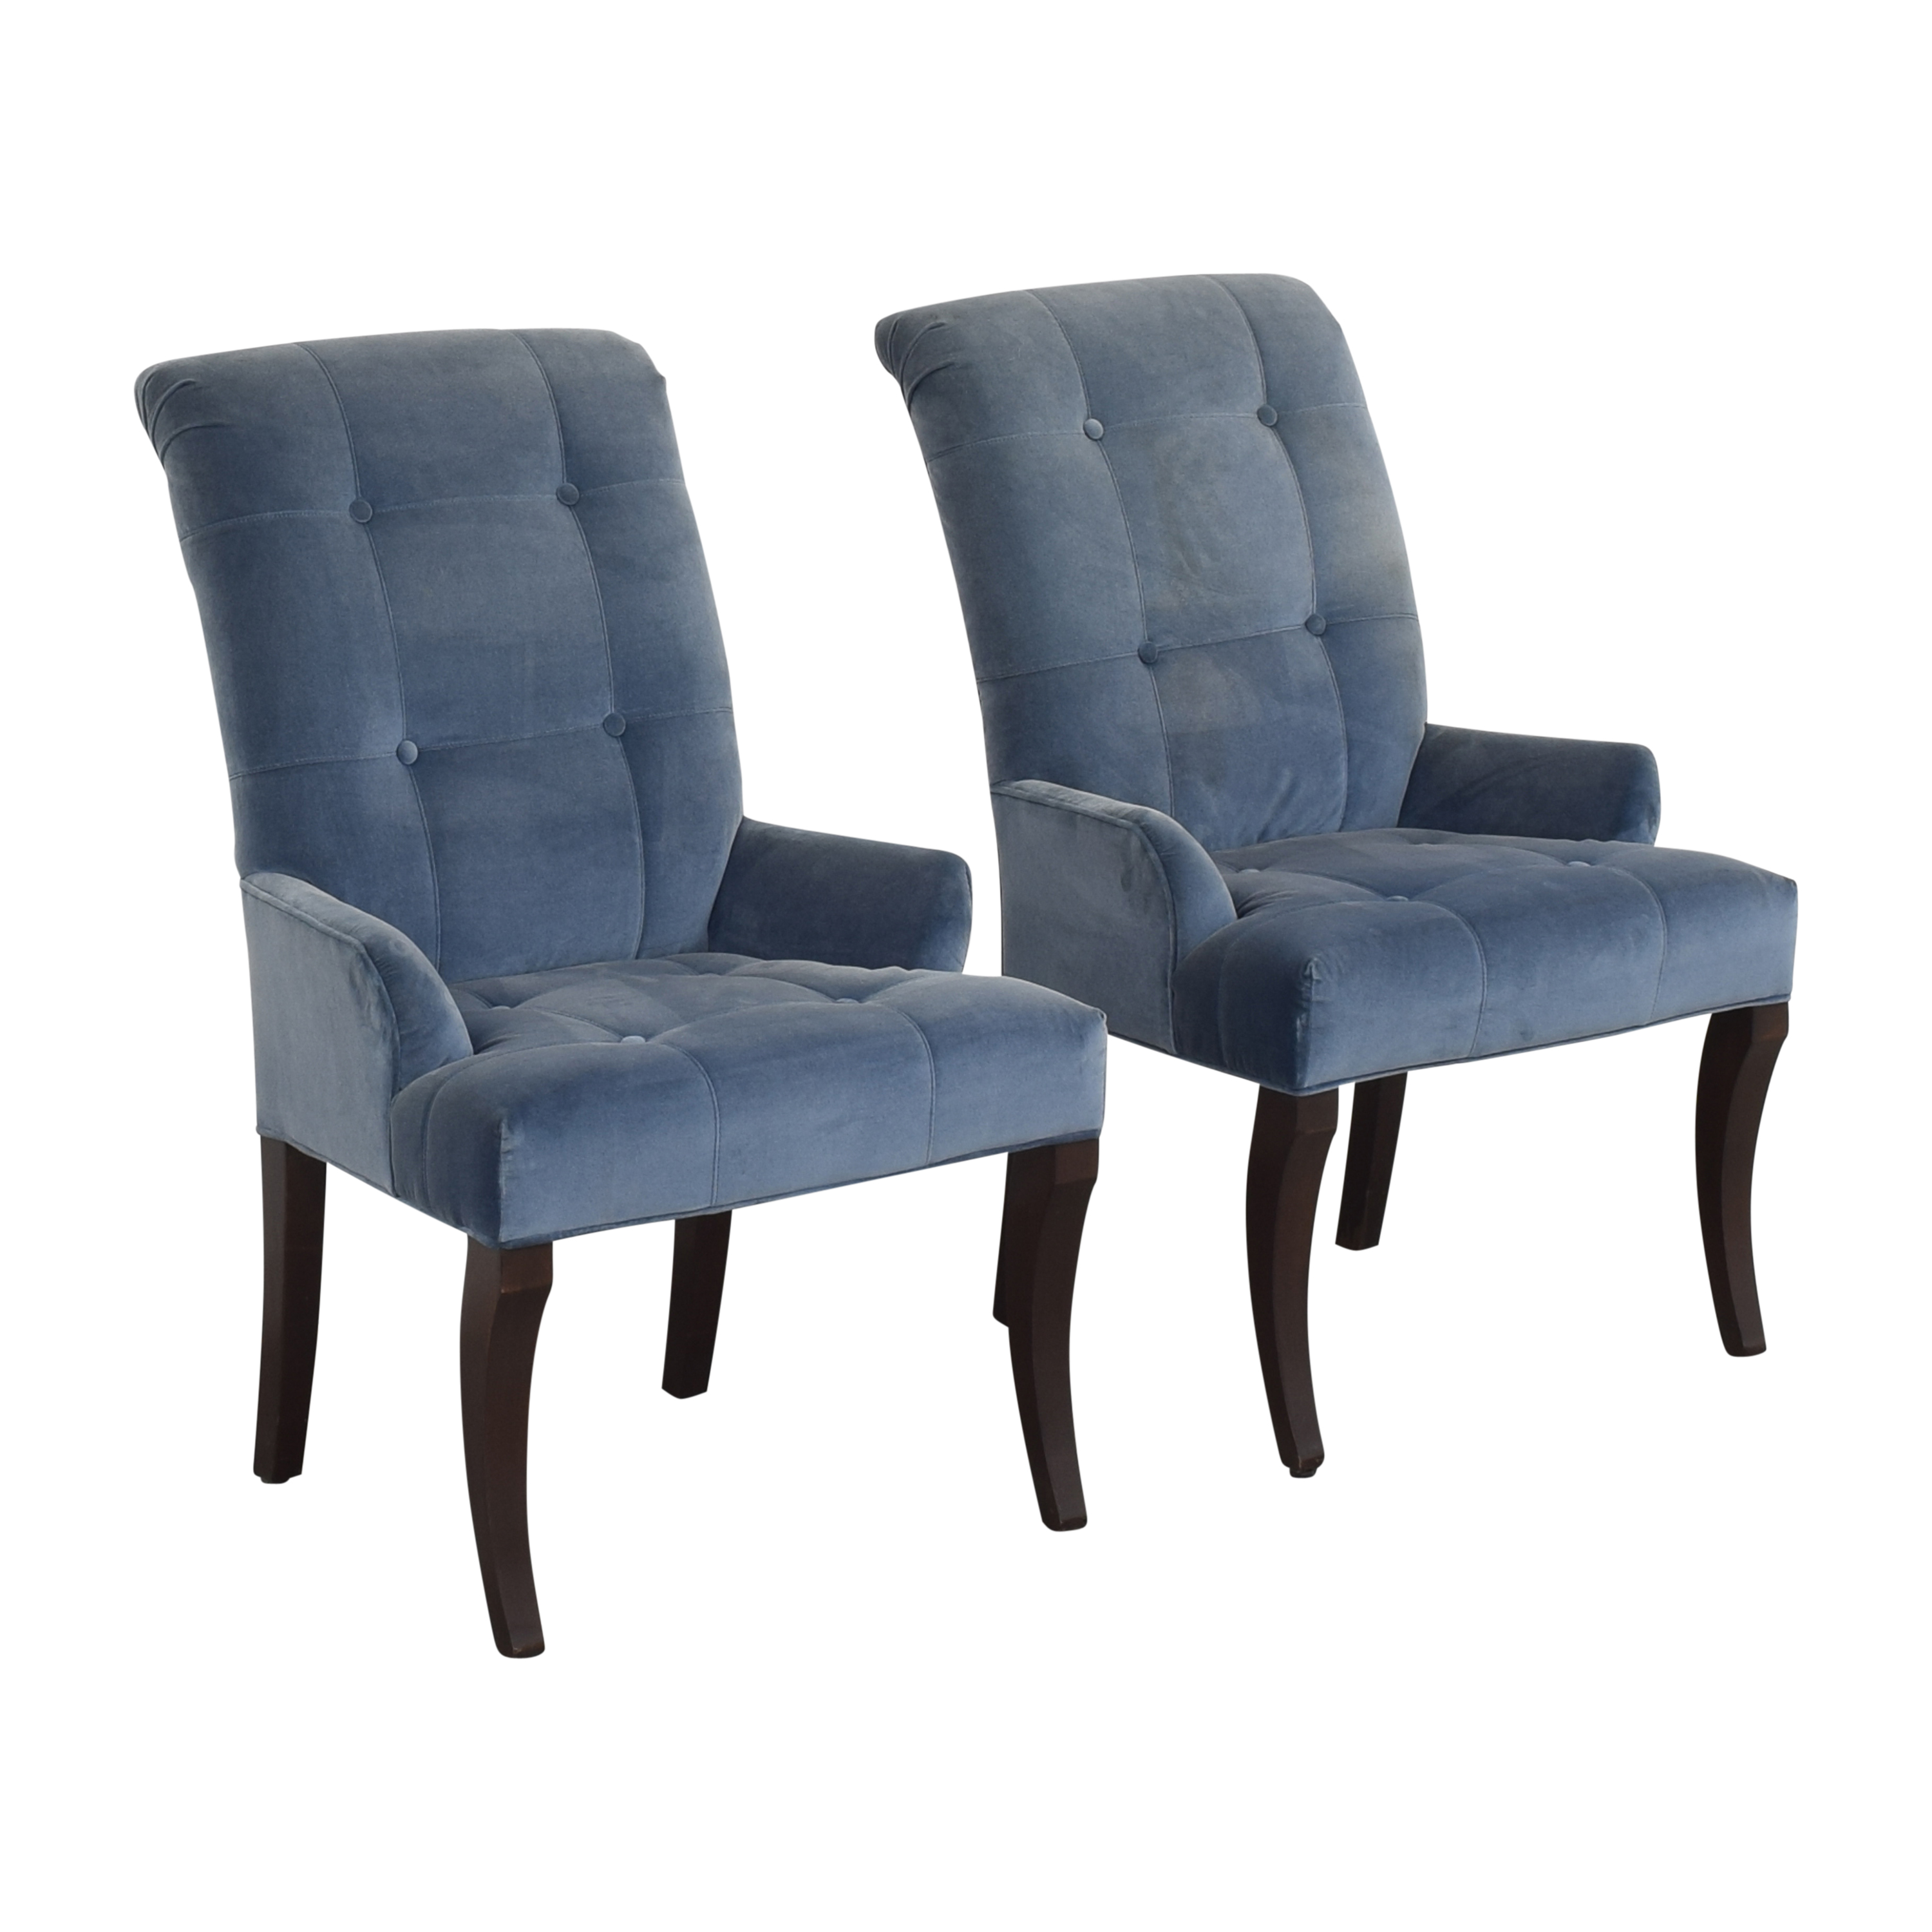 Ethan Allen Verlaine Dining Chairs / Chairs